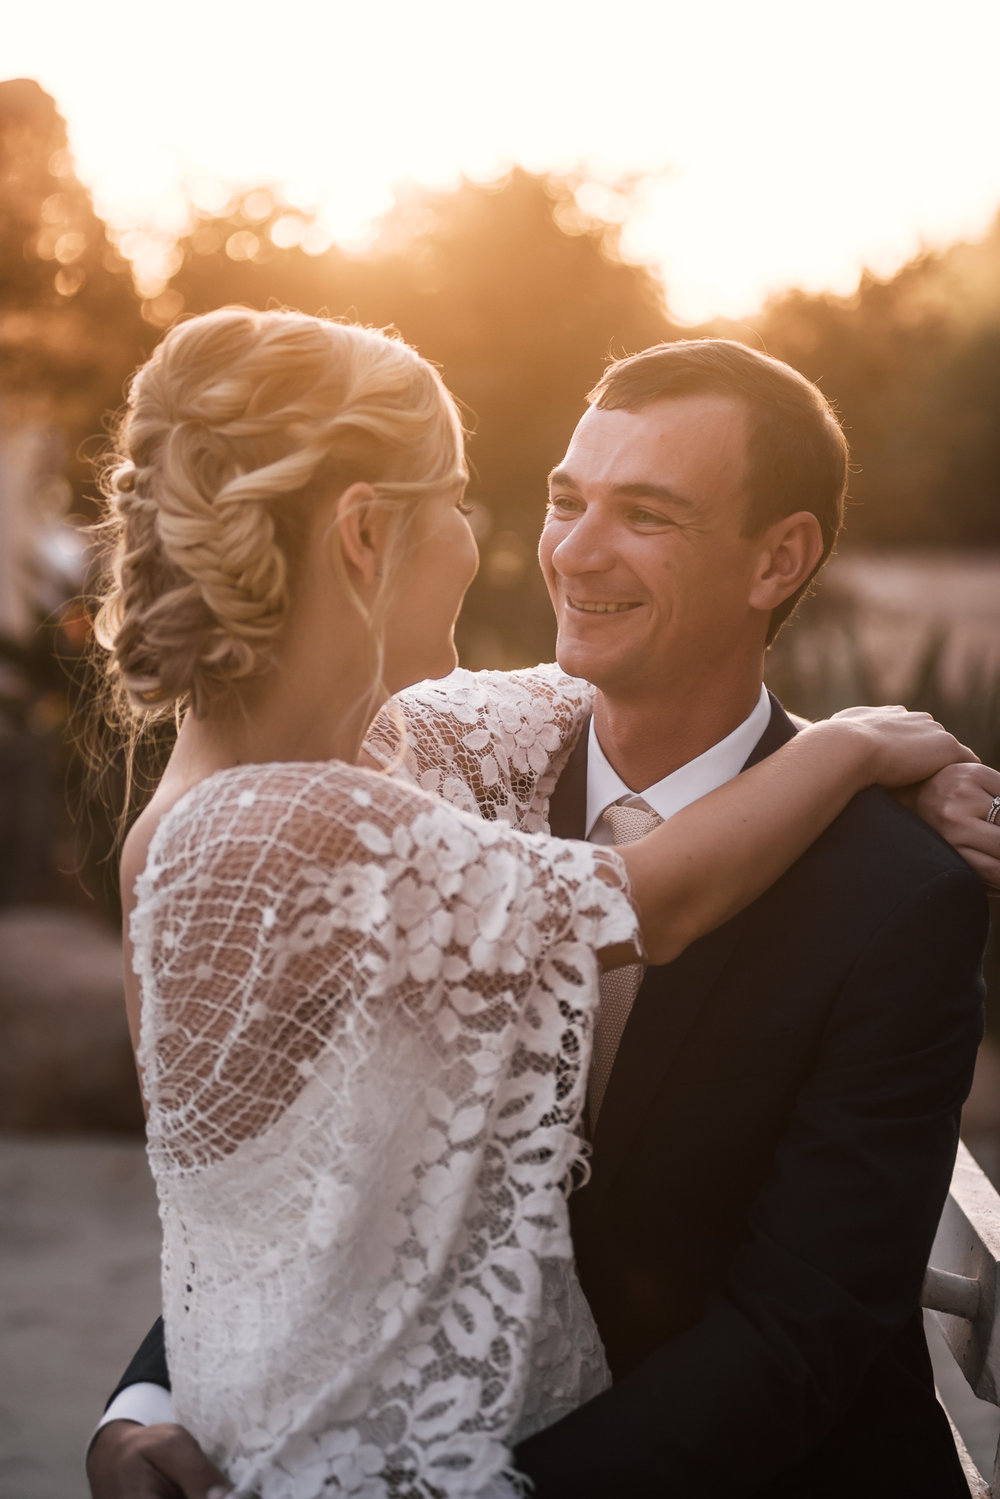 sunset romantic portrait of couple captured by photographer during romantic wedding at the historic Leo Carrillo Ranch in Carlsbad California